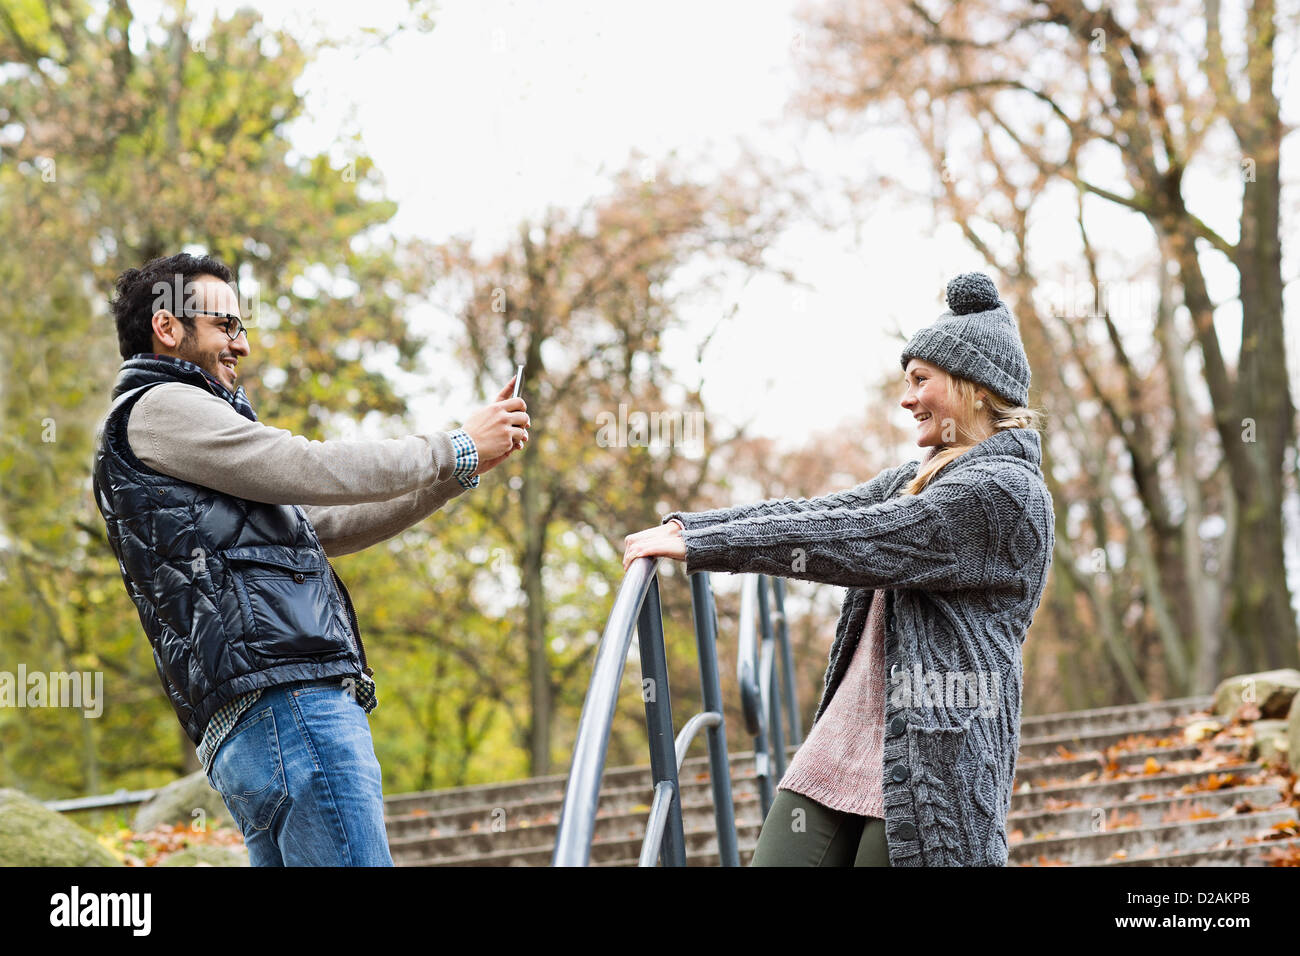 Man taking picture of girlfriend in park Photo Stock